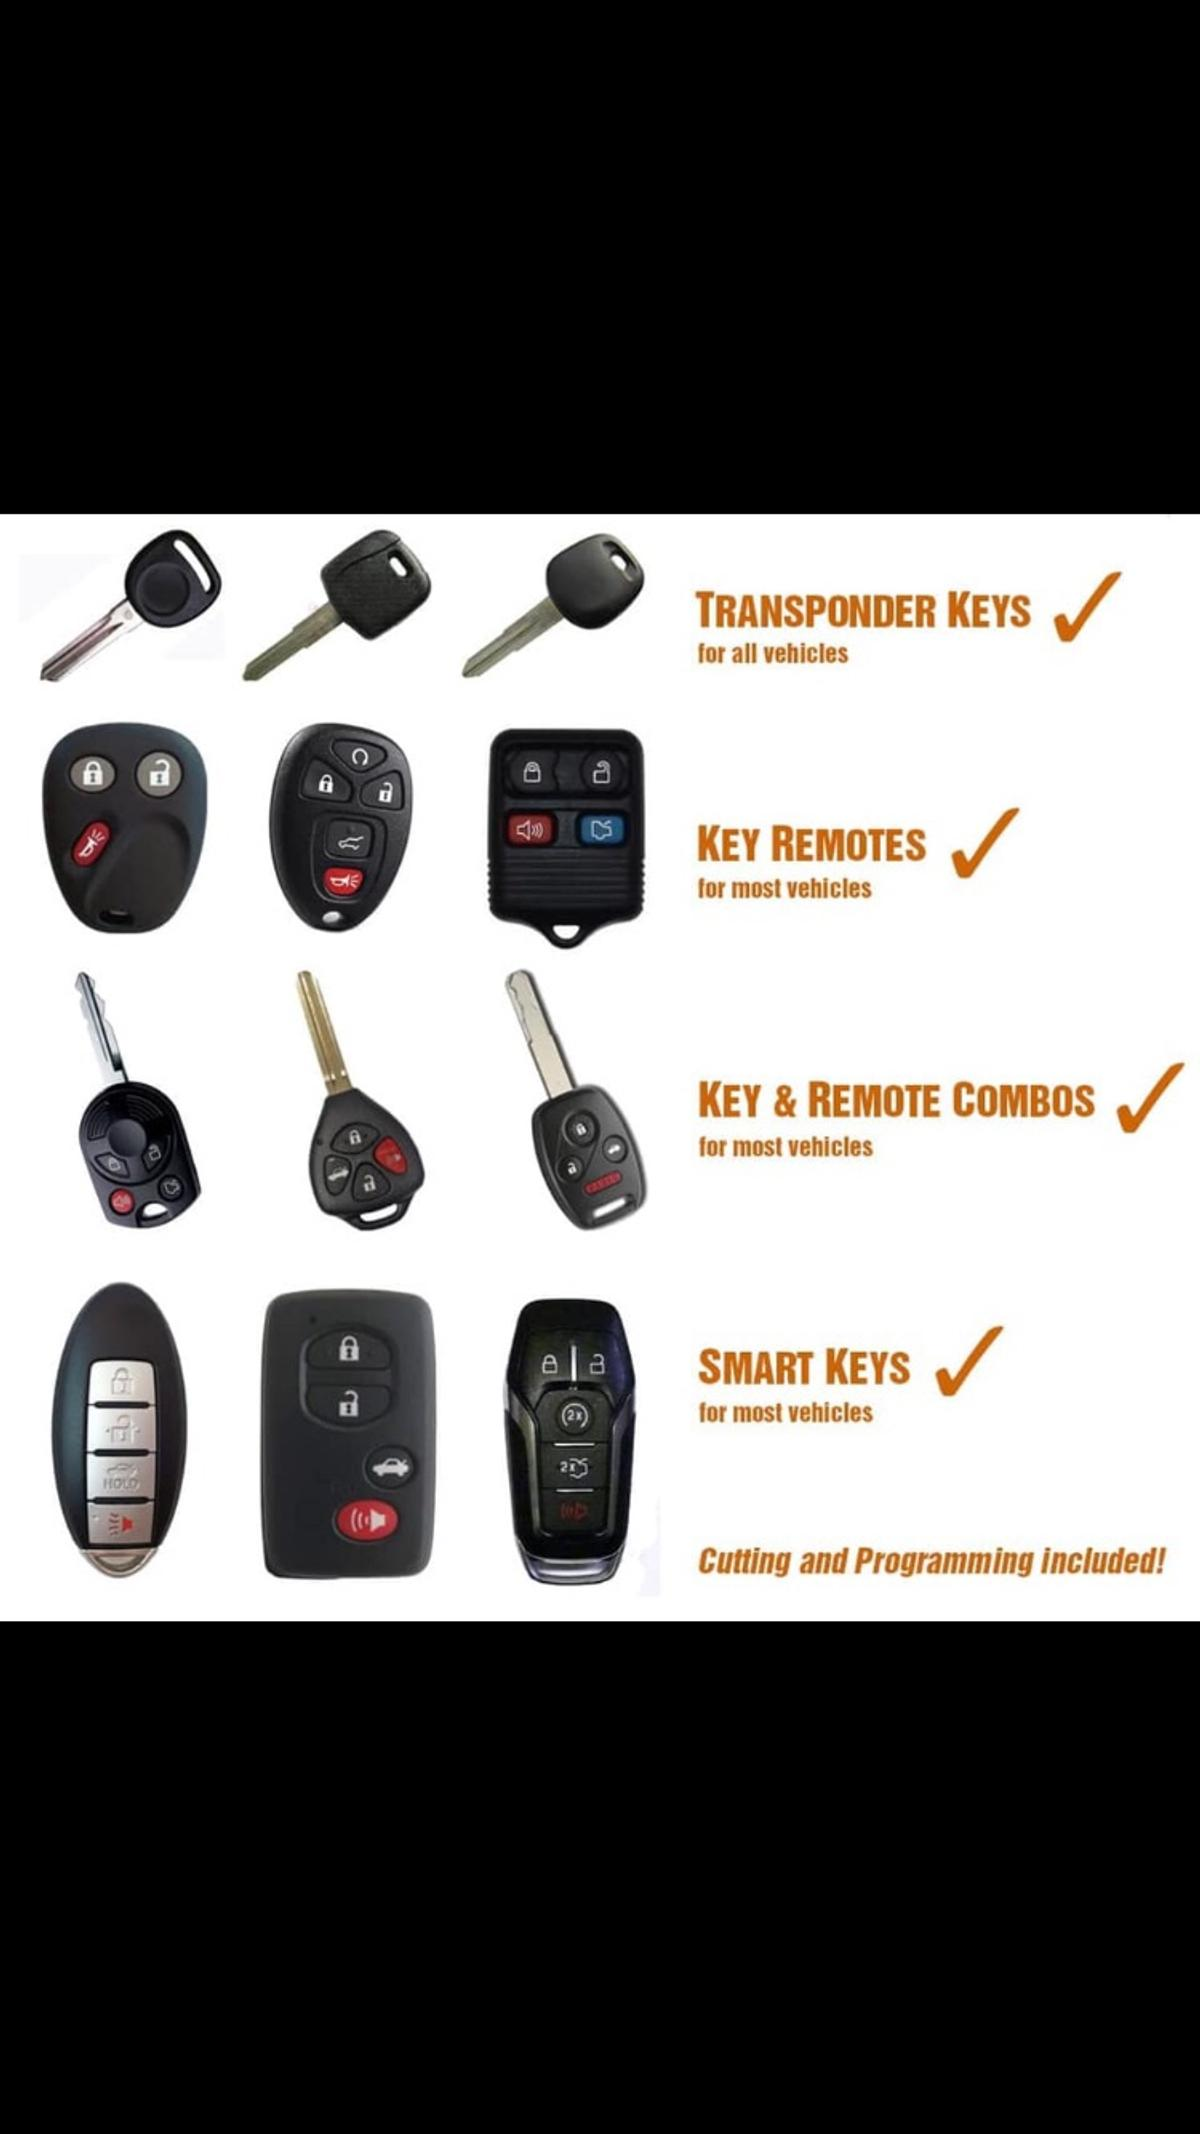 Car key spare or repair in SE25 London for £60 00 for sale